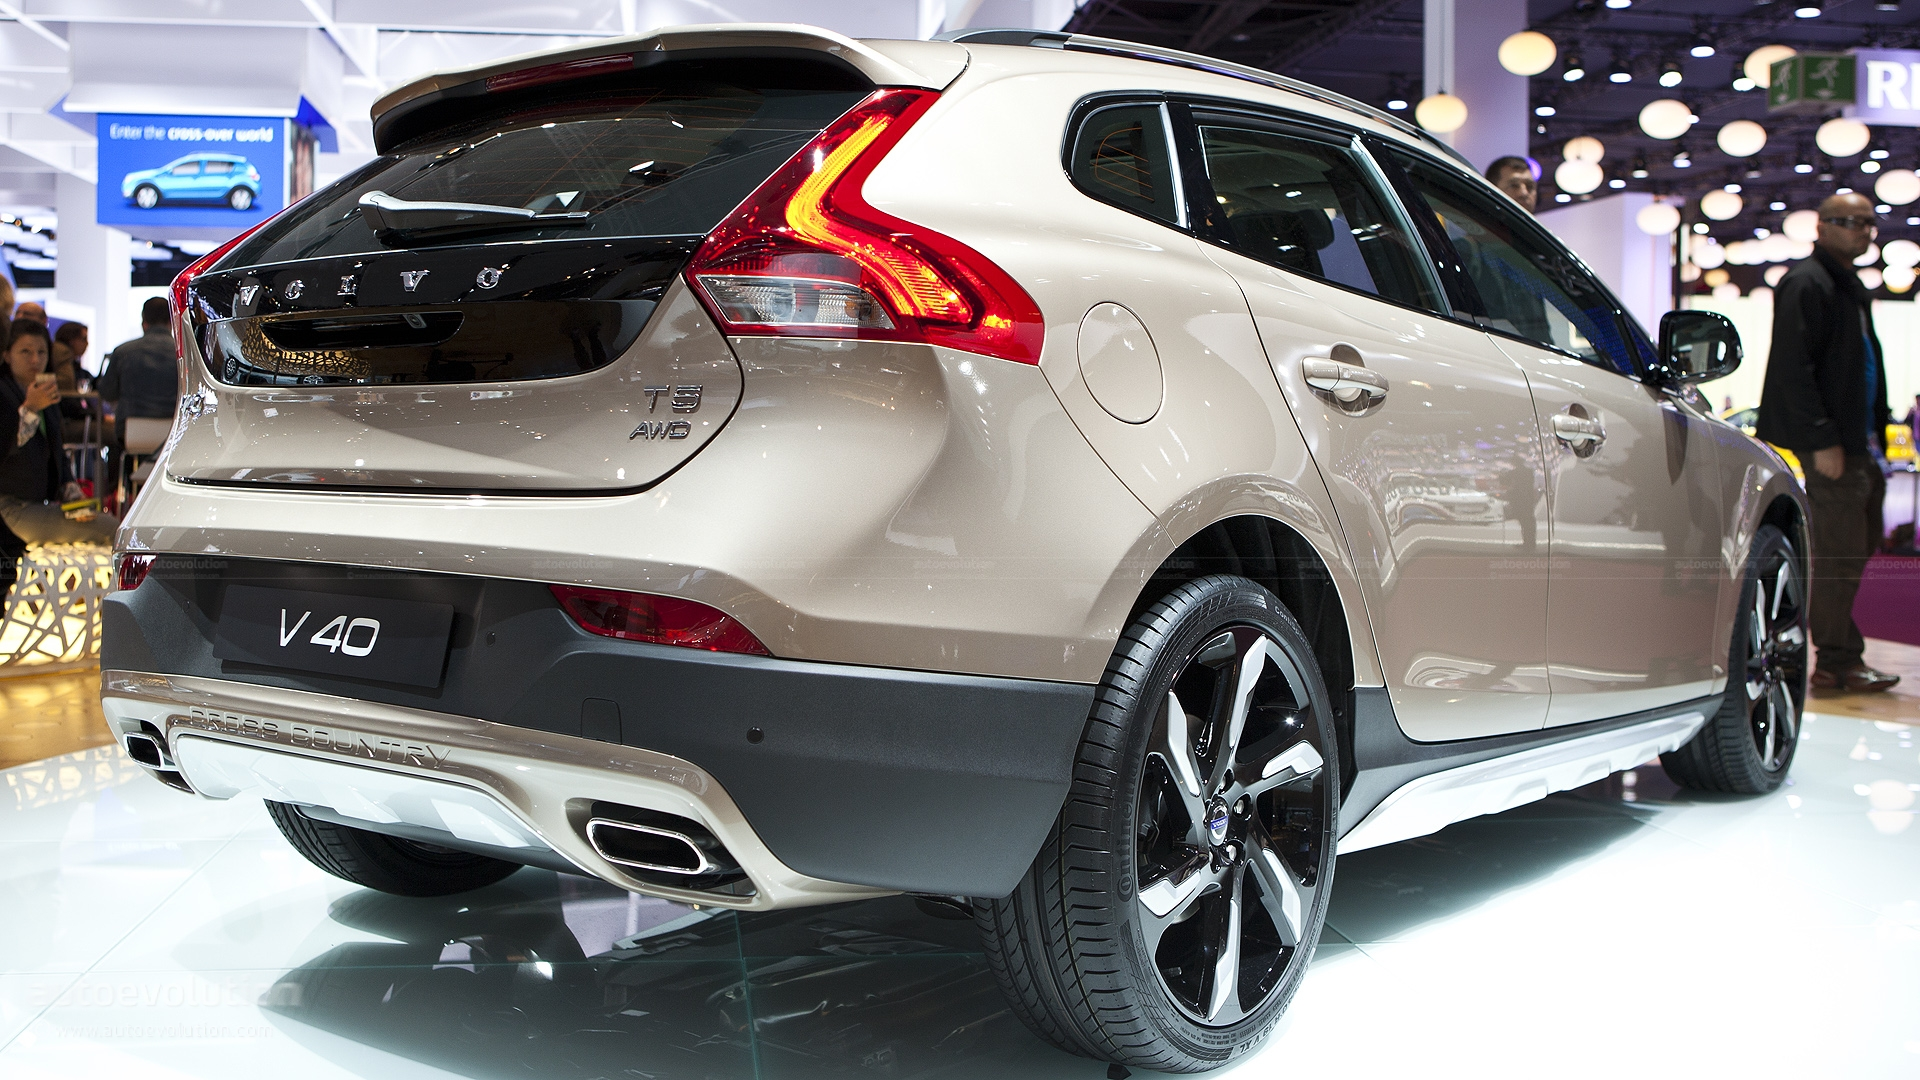 Volvo V40 Cross Country Technical Details, History, Photos